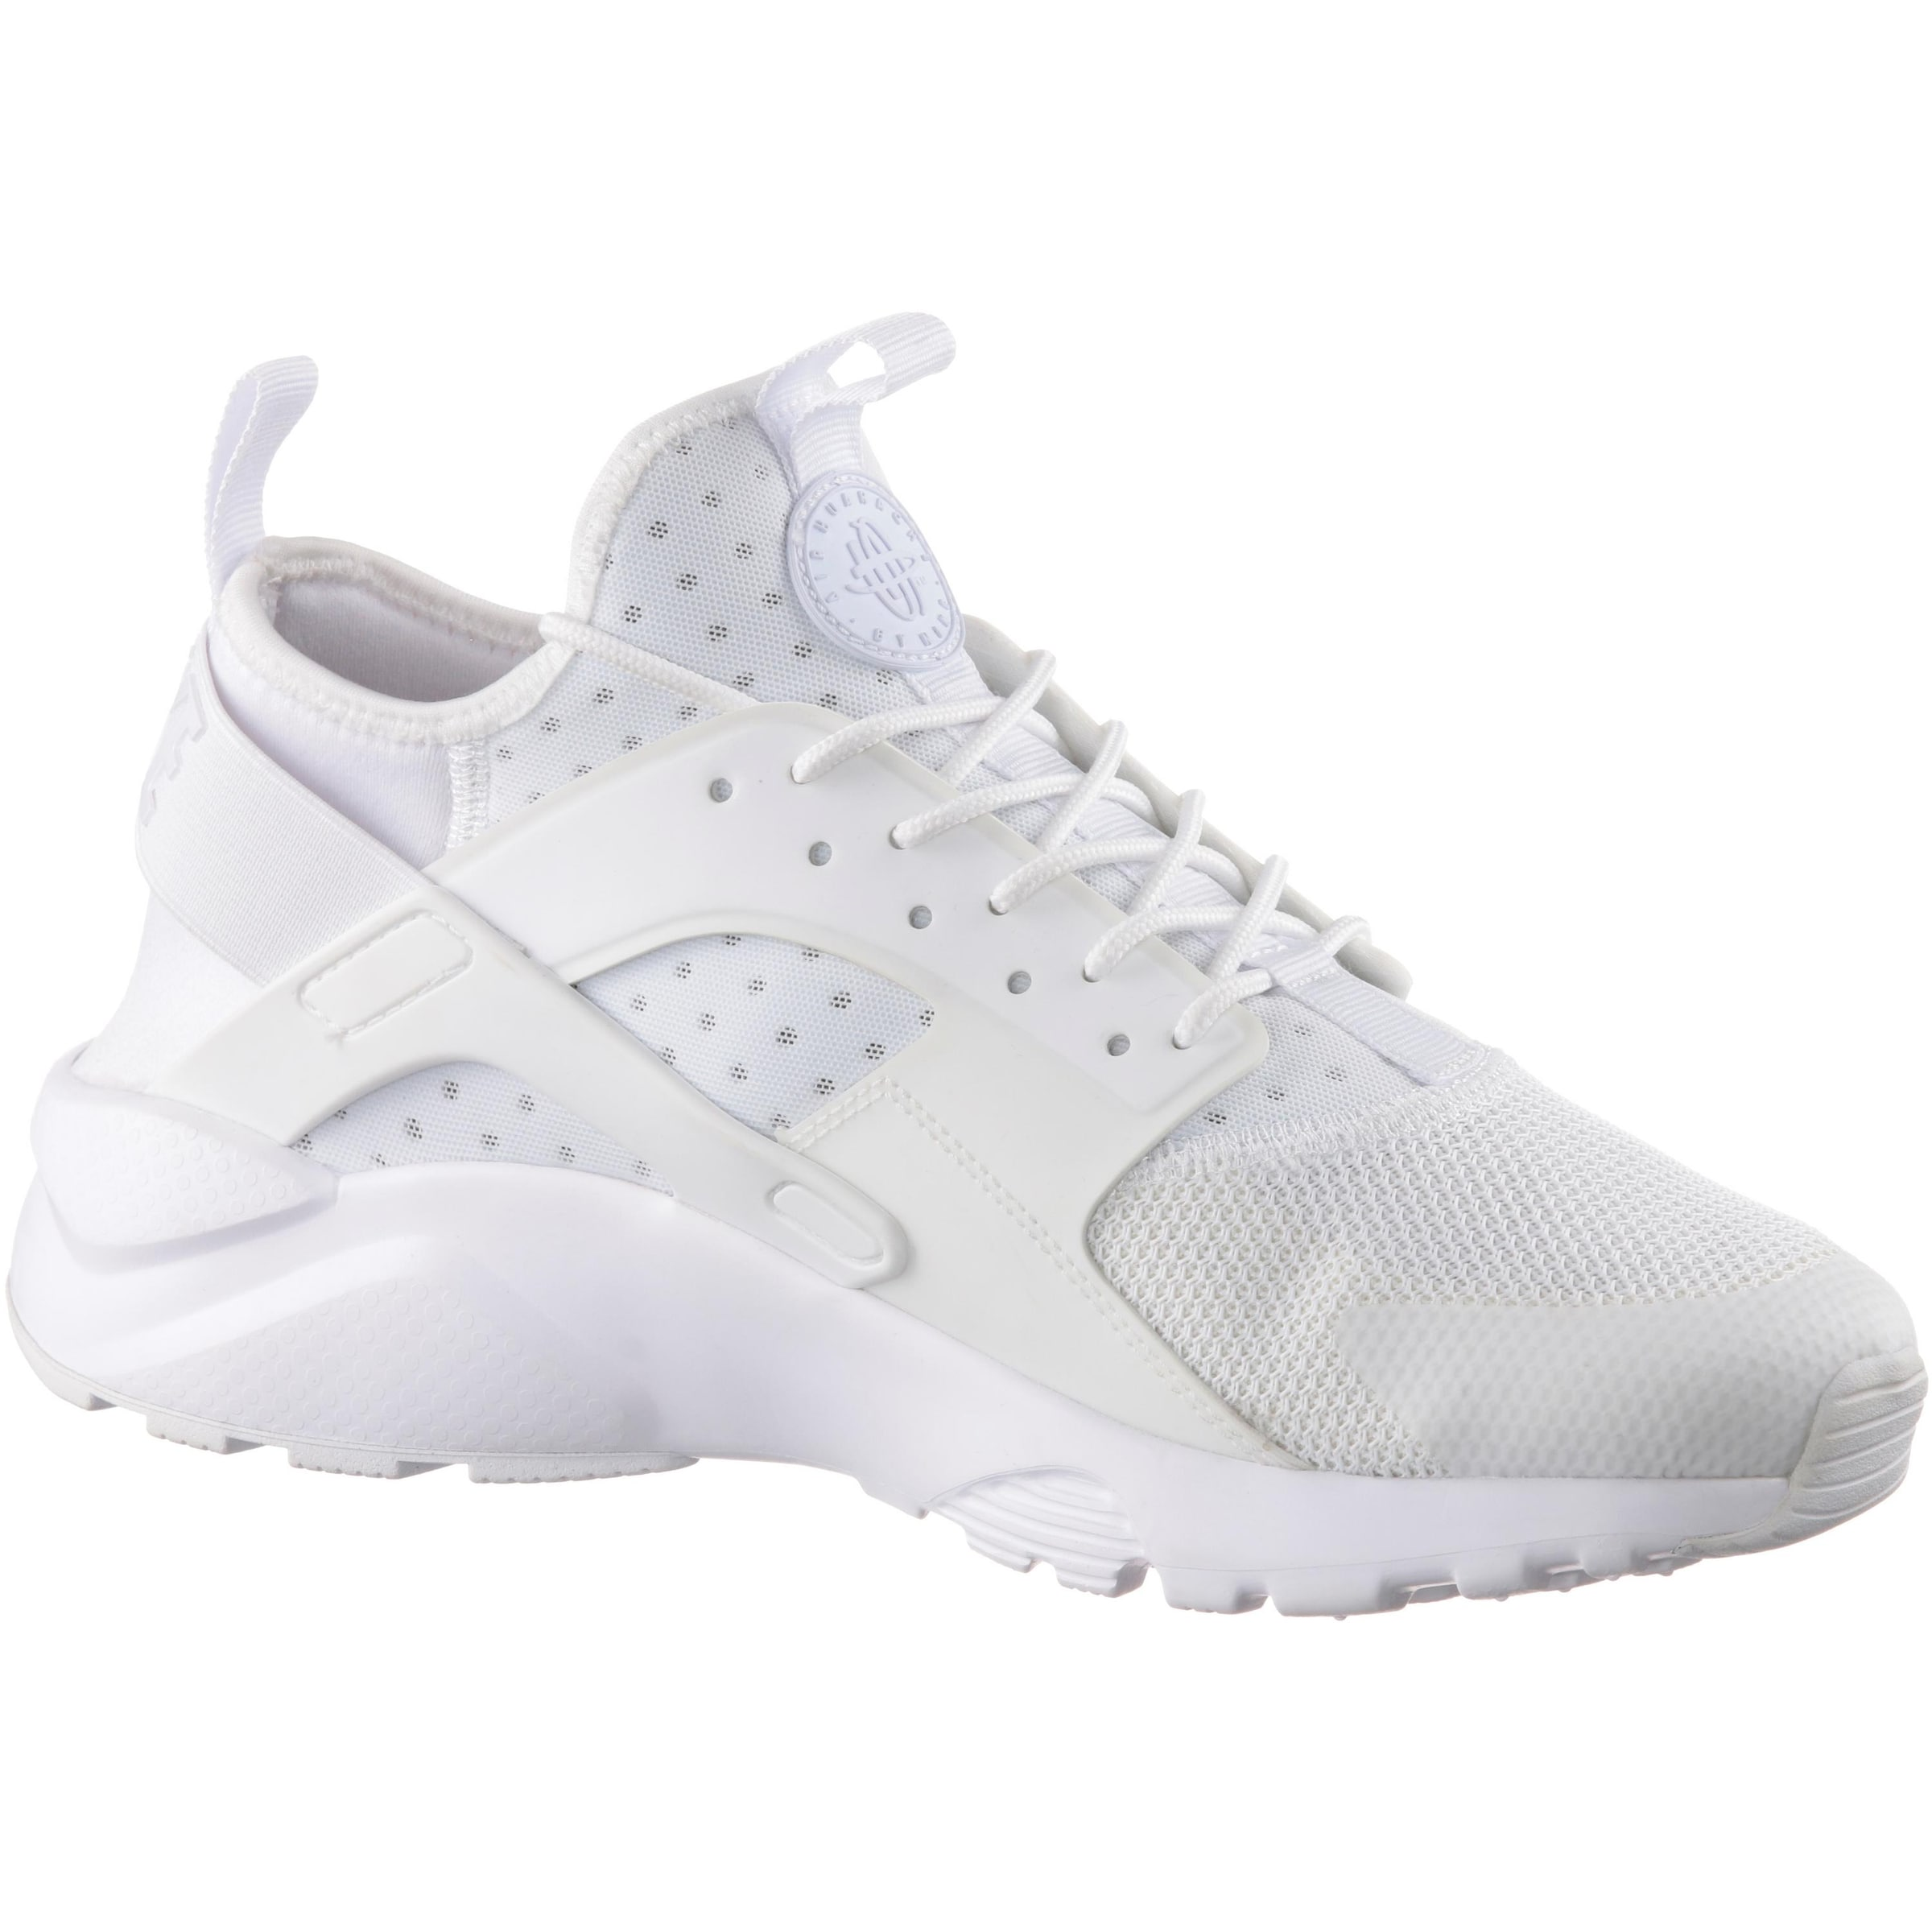 Nike Huarache Weiß 'air Ultra' Sportswear Run In Sneaker ARLq34j5c